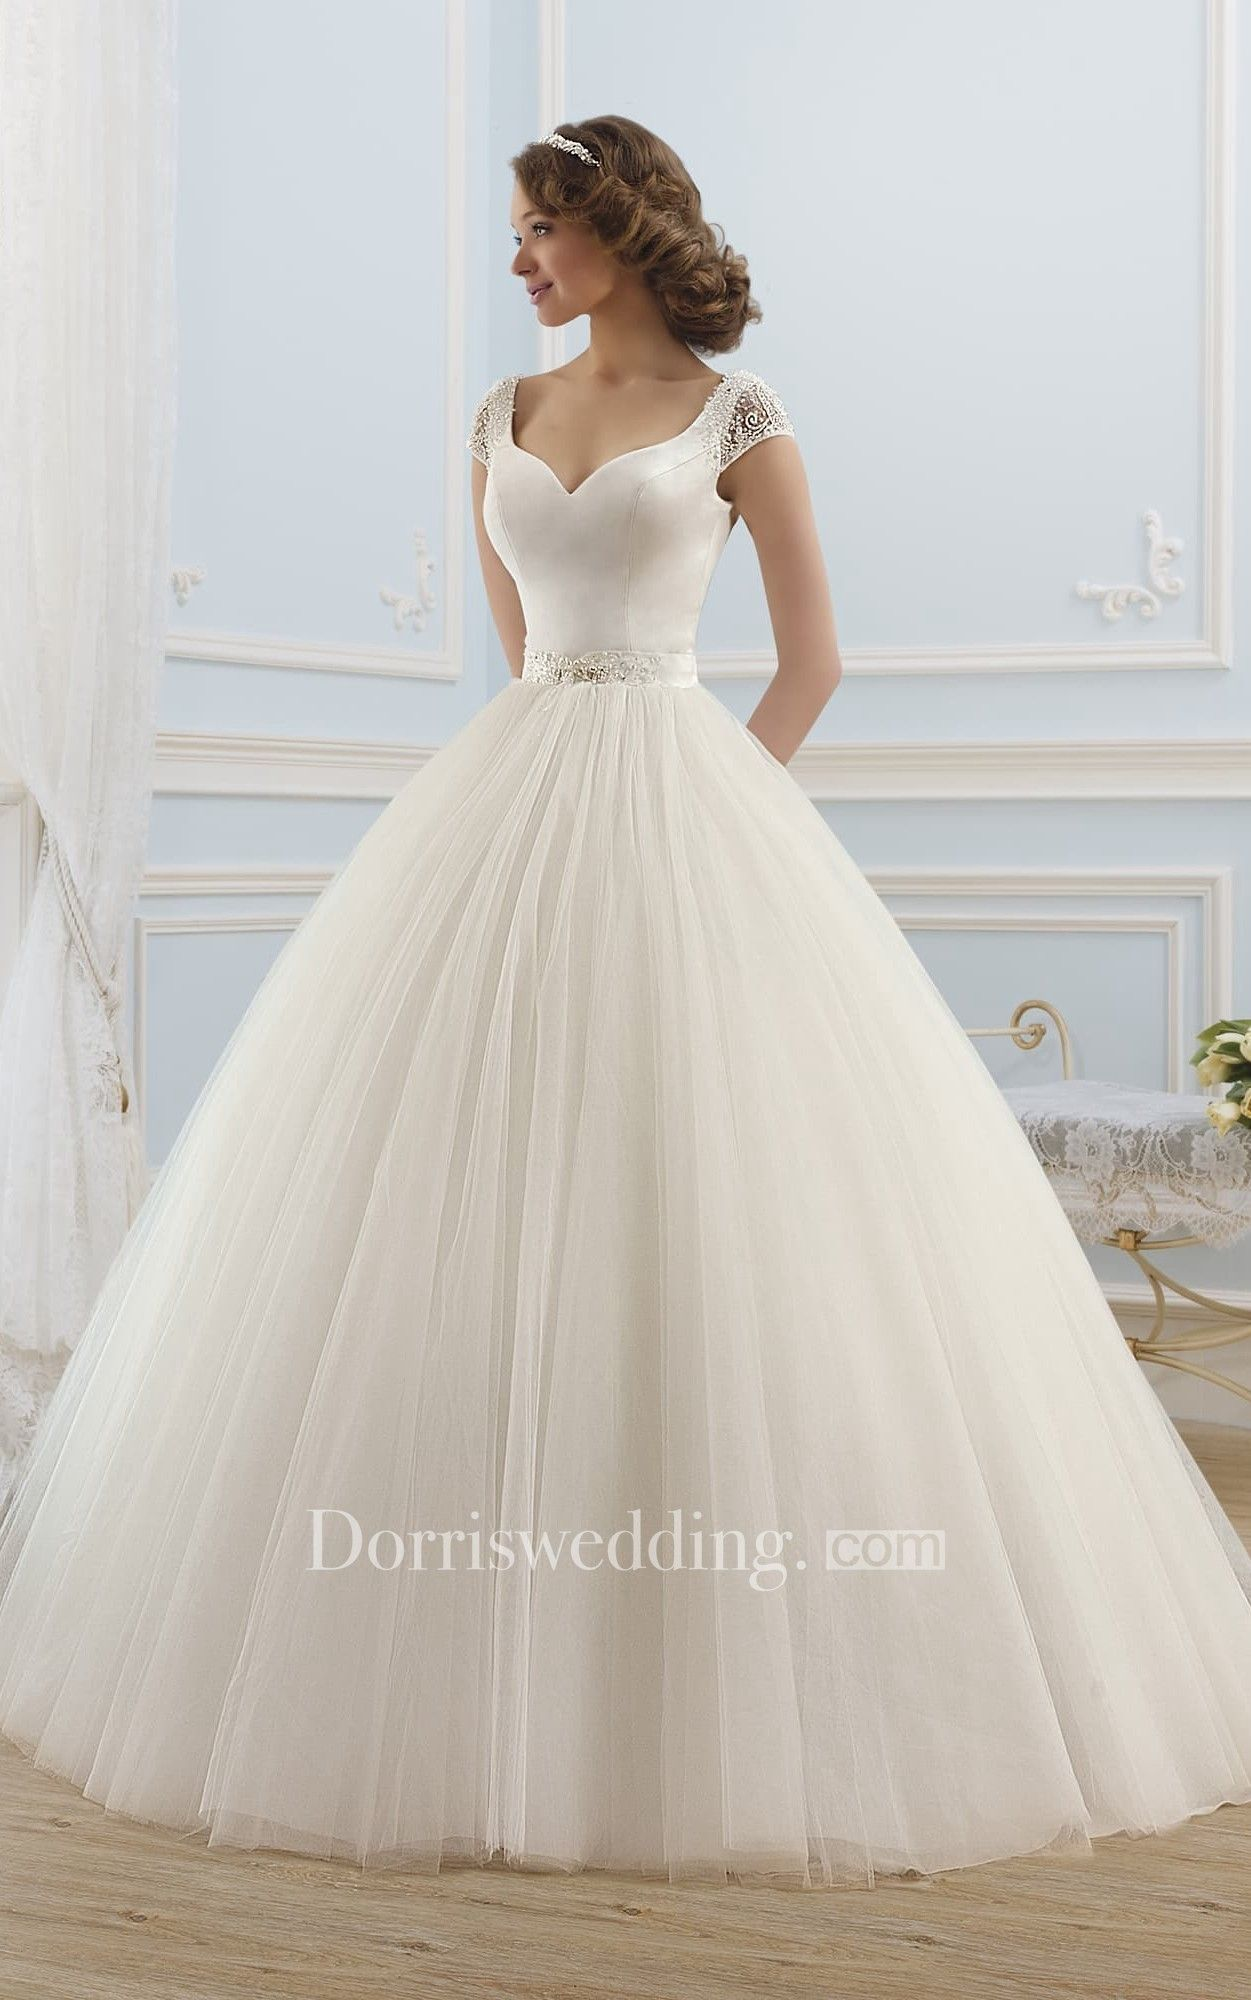 Ball gown long vneck shortsleeve backless tulle dress with beading